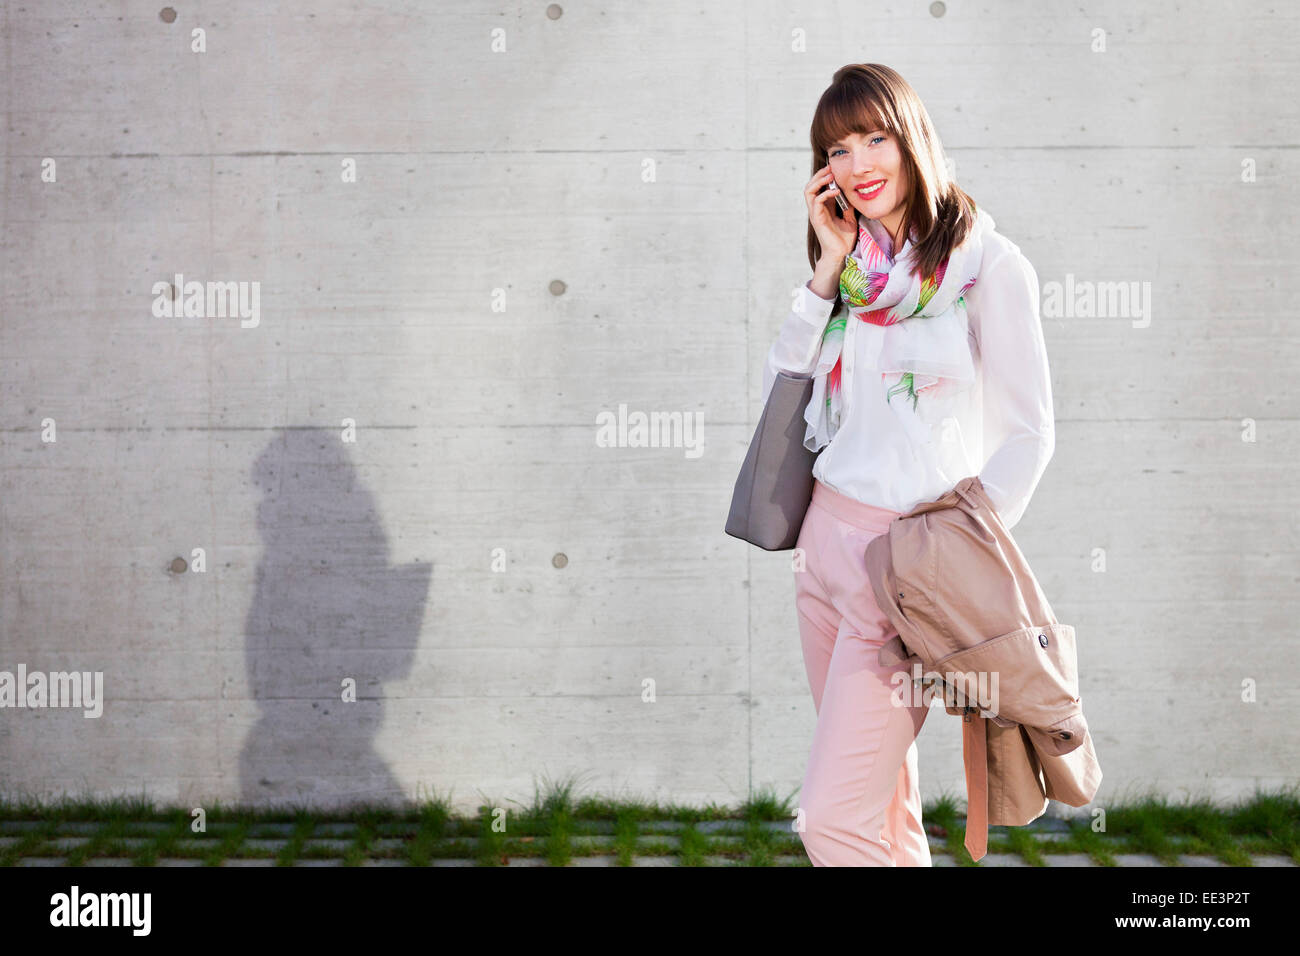 Young woman outdoors, Munich, Bavaria, Germany - Stock Image